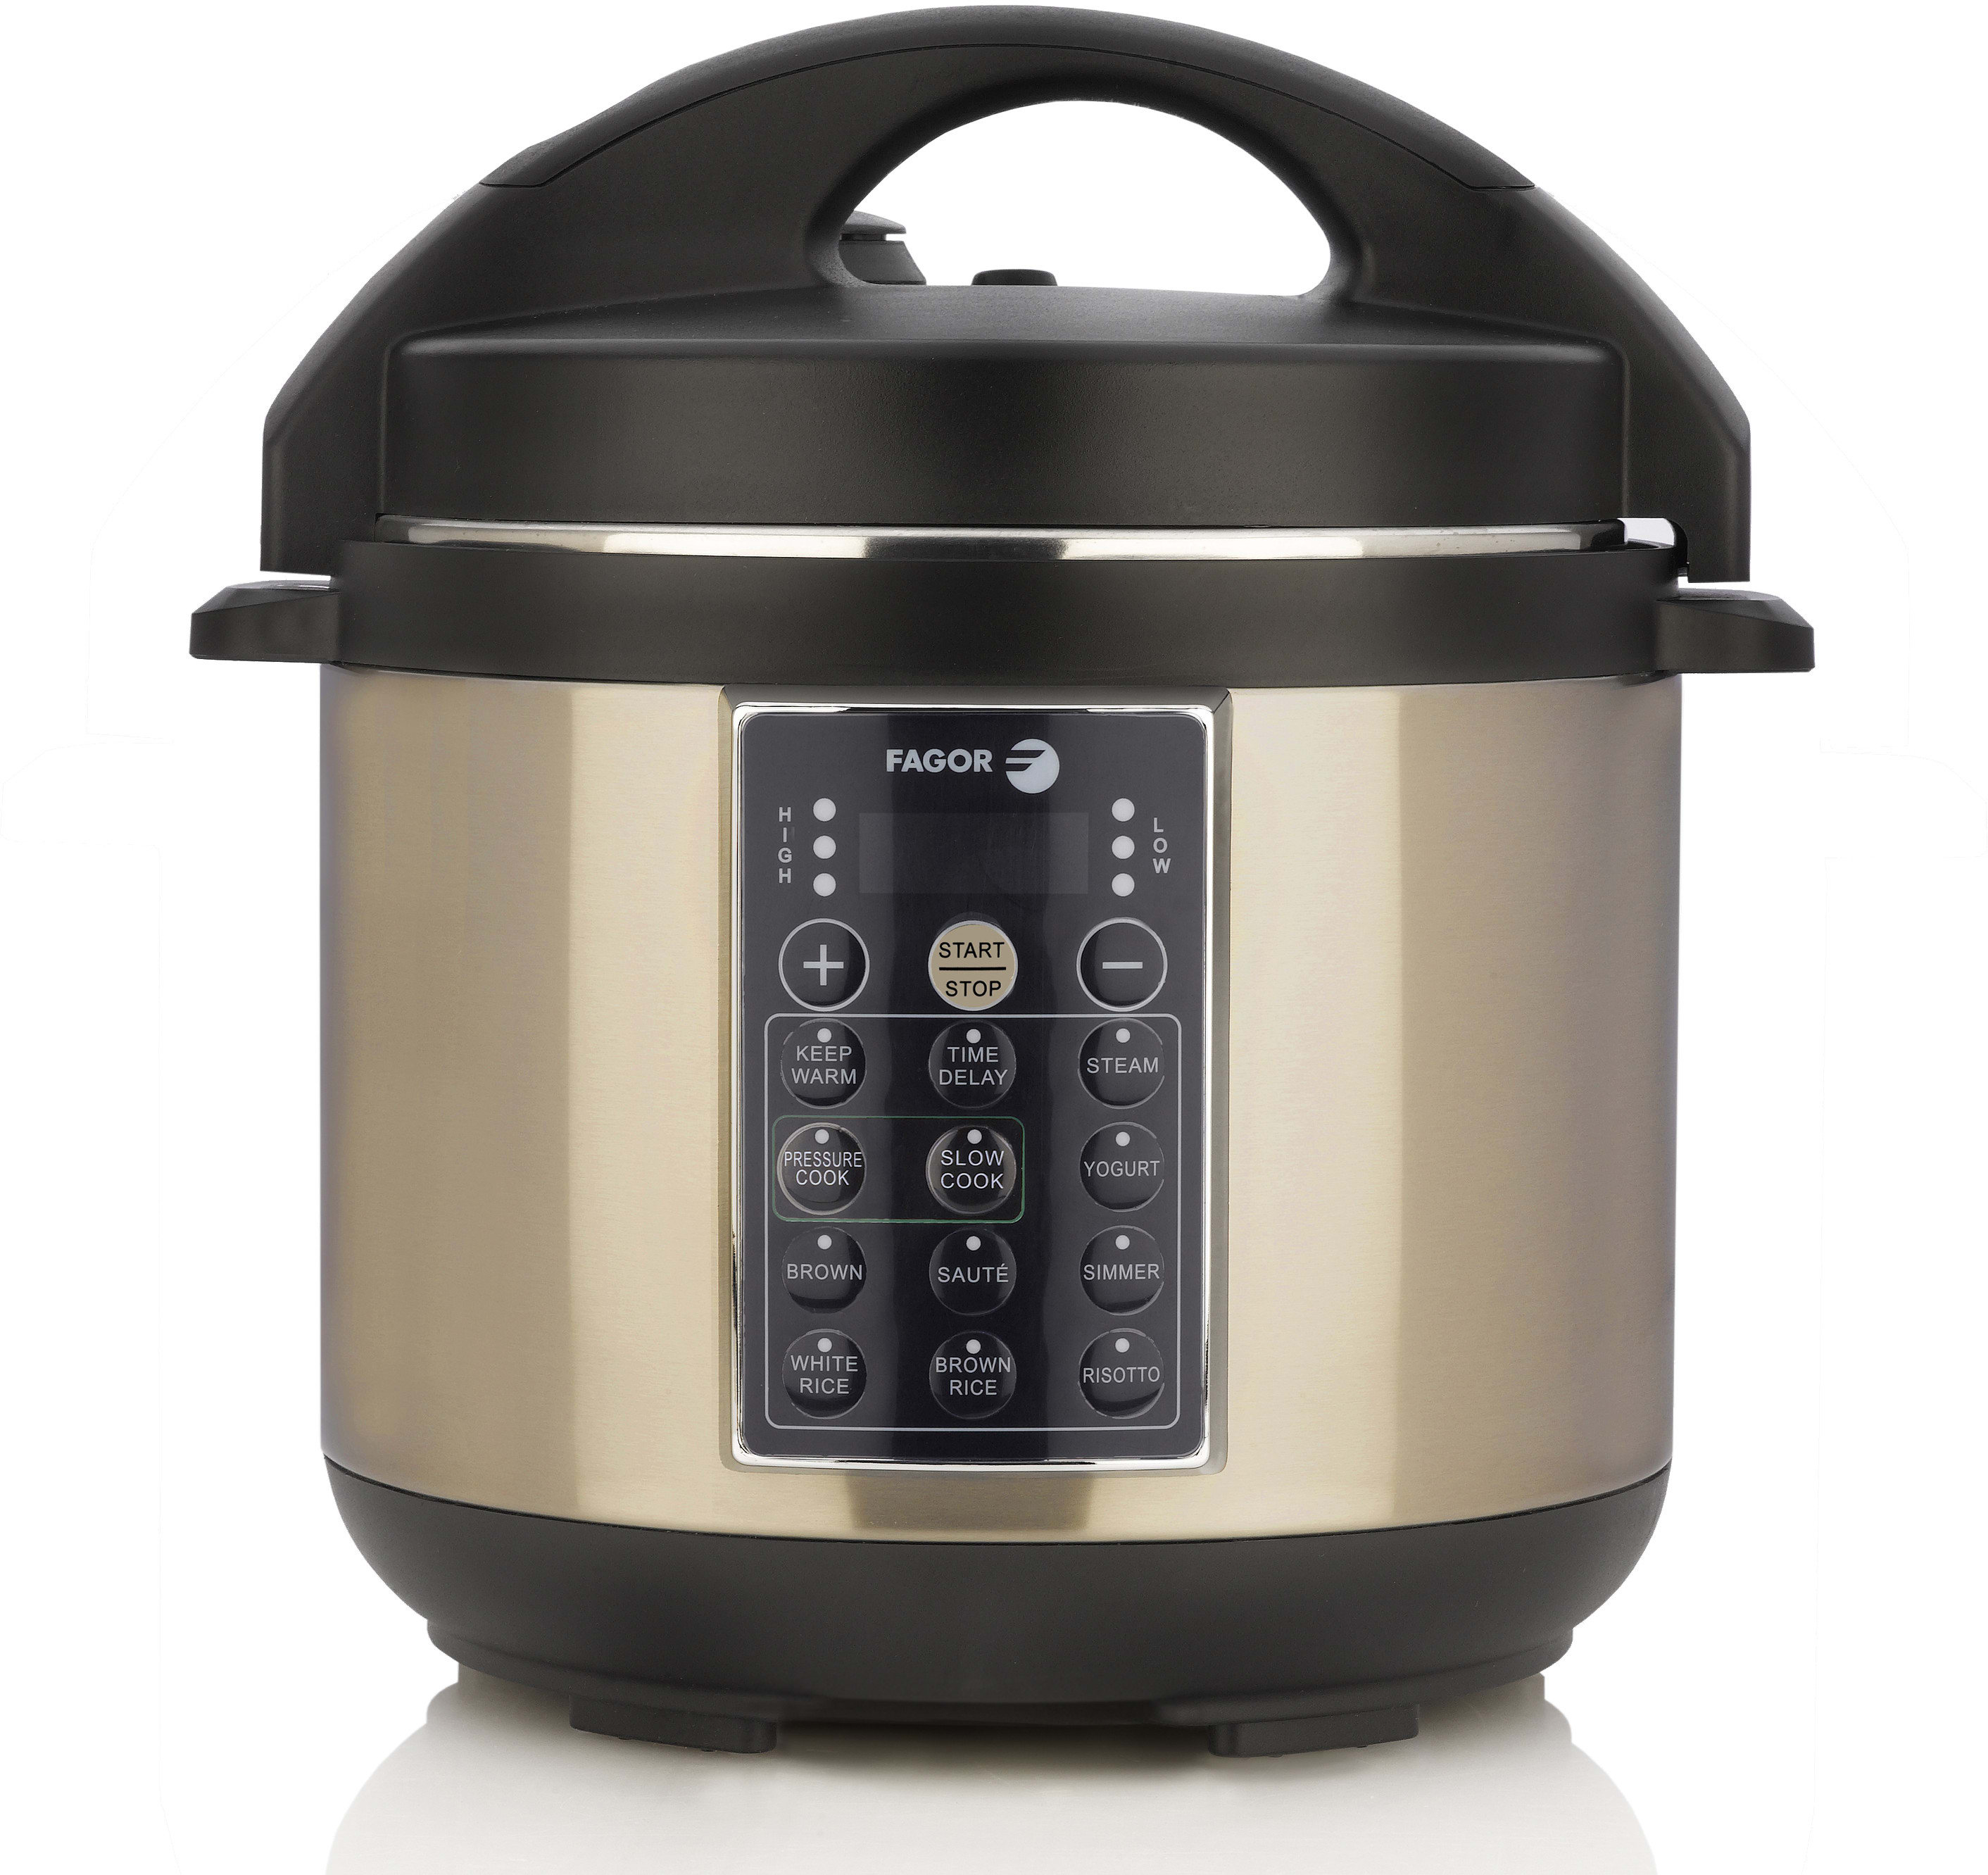 Fagor Lux Multi Cooker Instructions